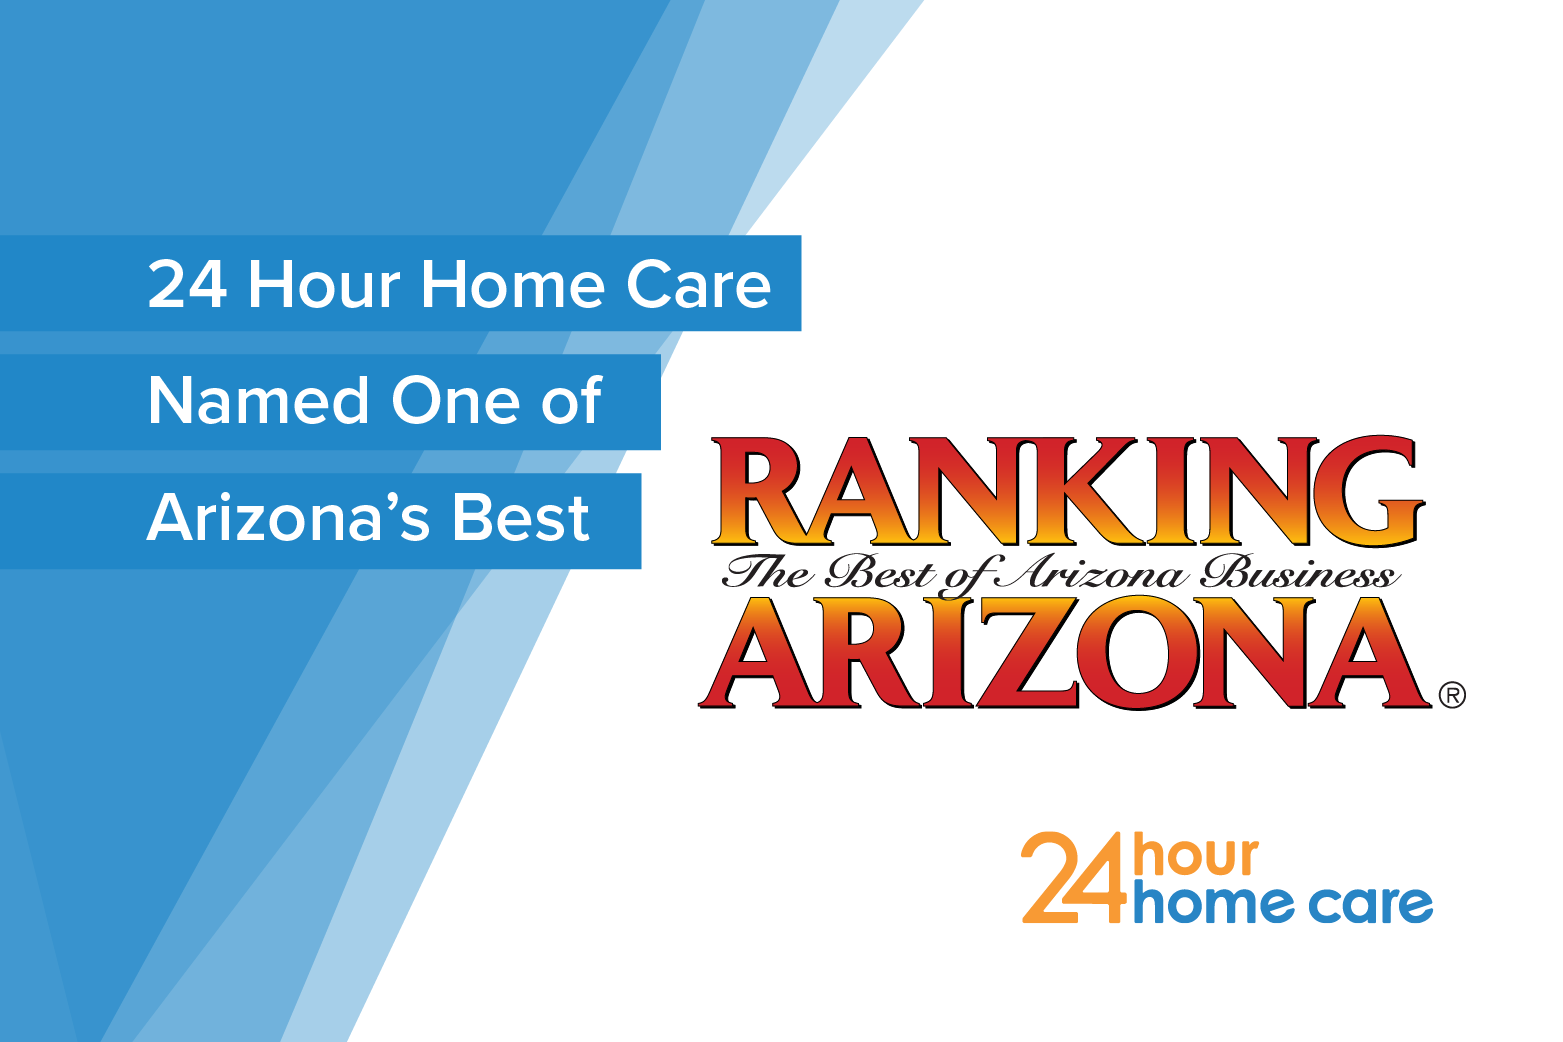 24 Hour Home Care Named One of Arizona's Best in Home Health Agencies and Best Workplace Culture Through Ranking Arizona